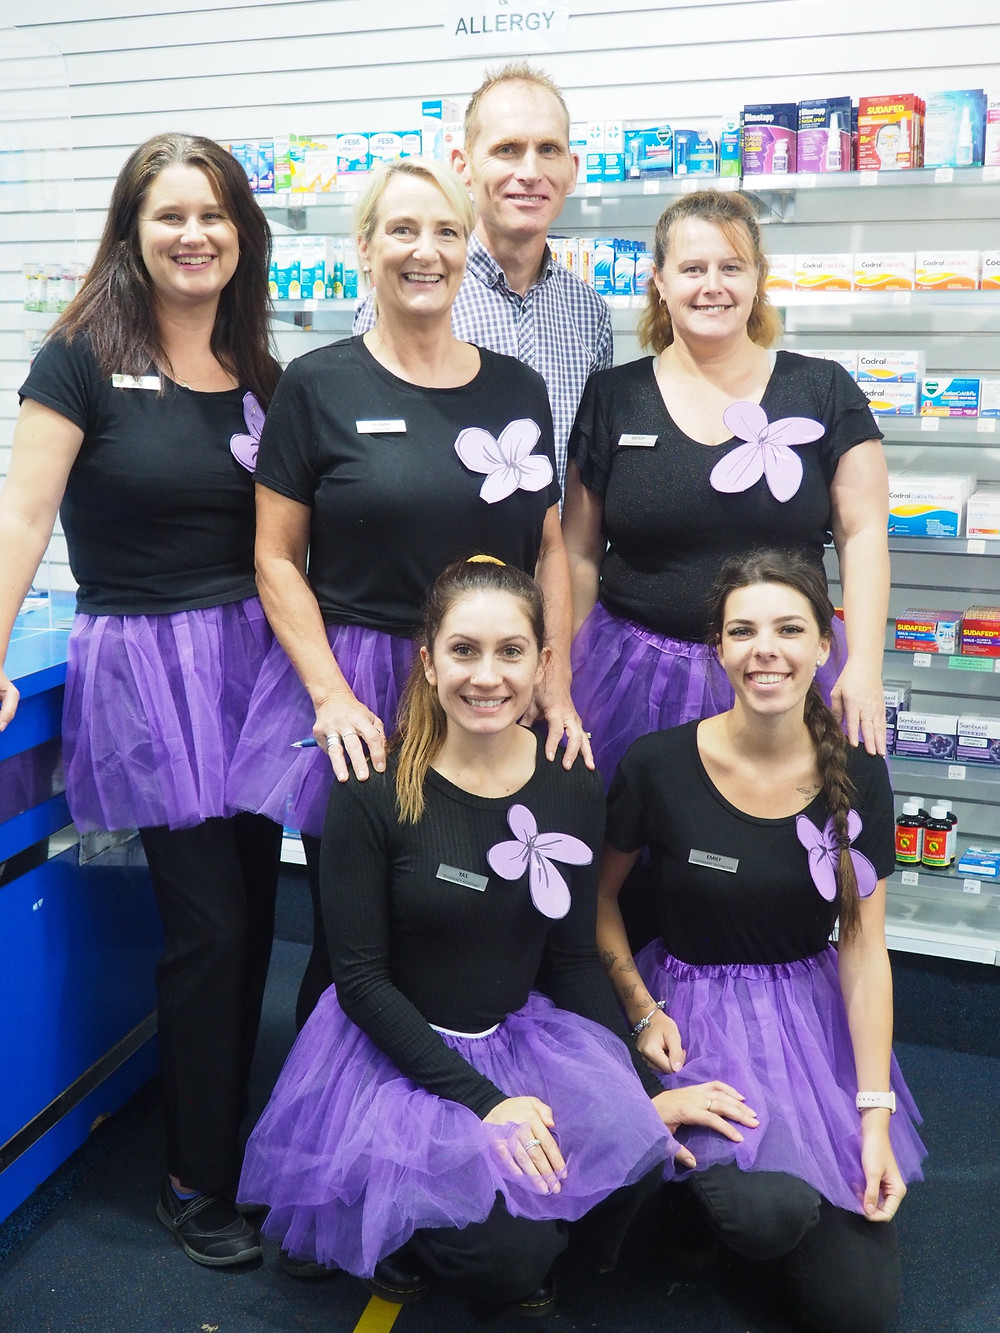 Our friends at Wauchope Pharmacy are proud to be runners up for The Best Dressed Staff Prize and are featured in Brilliant Online